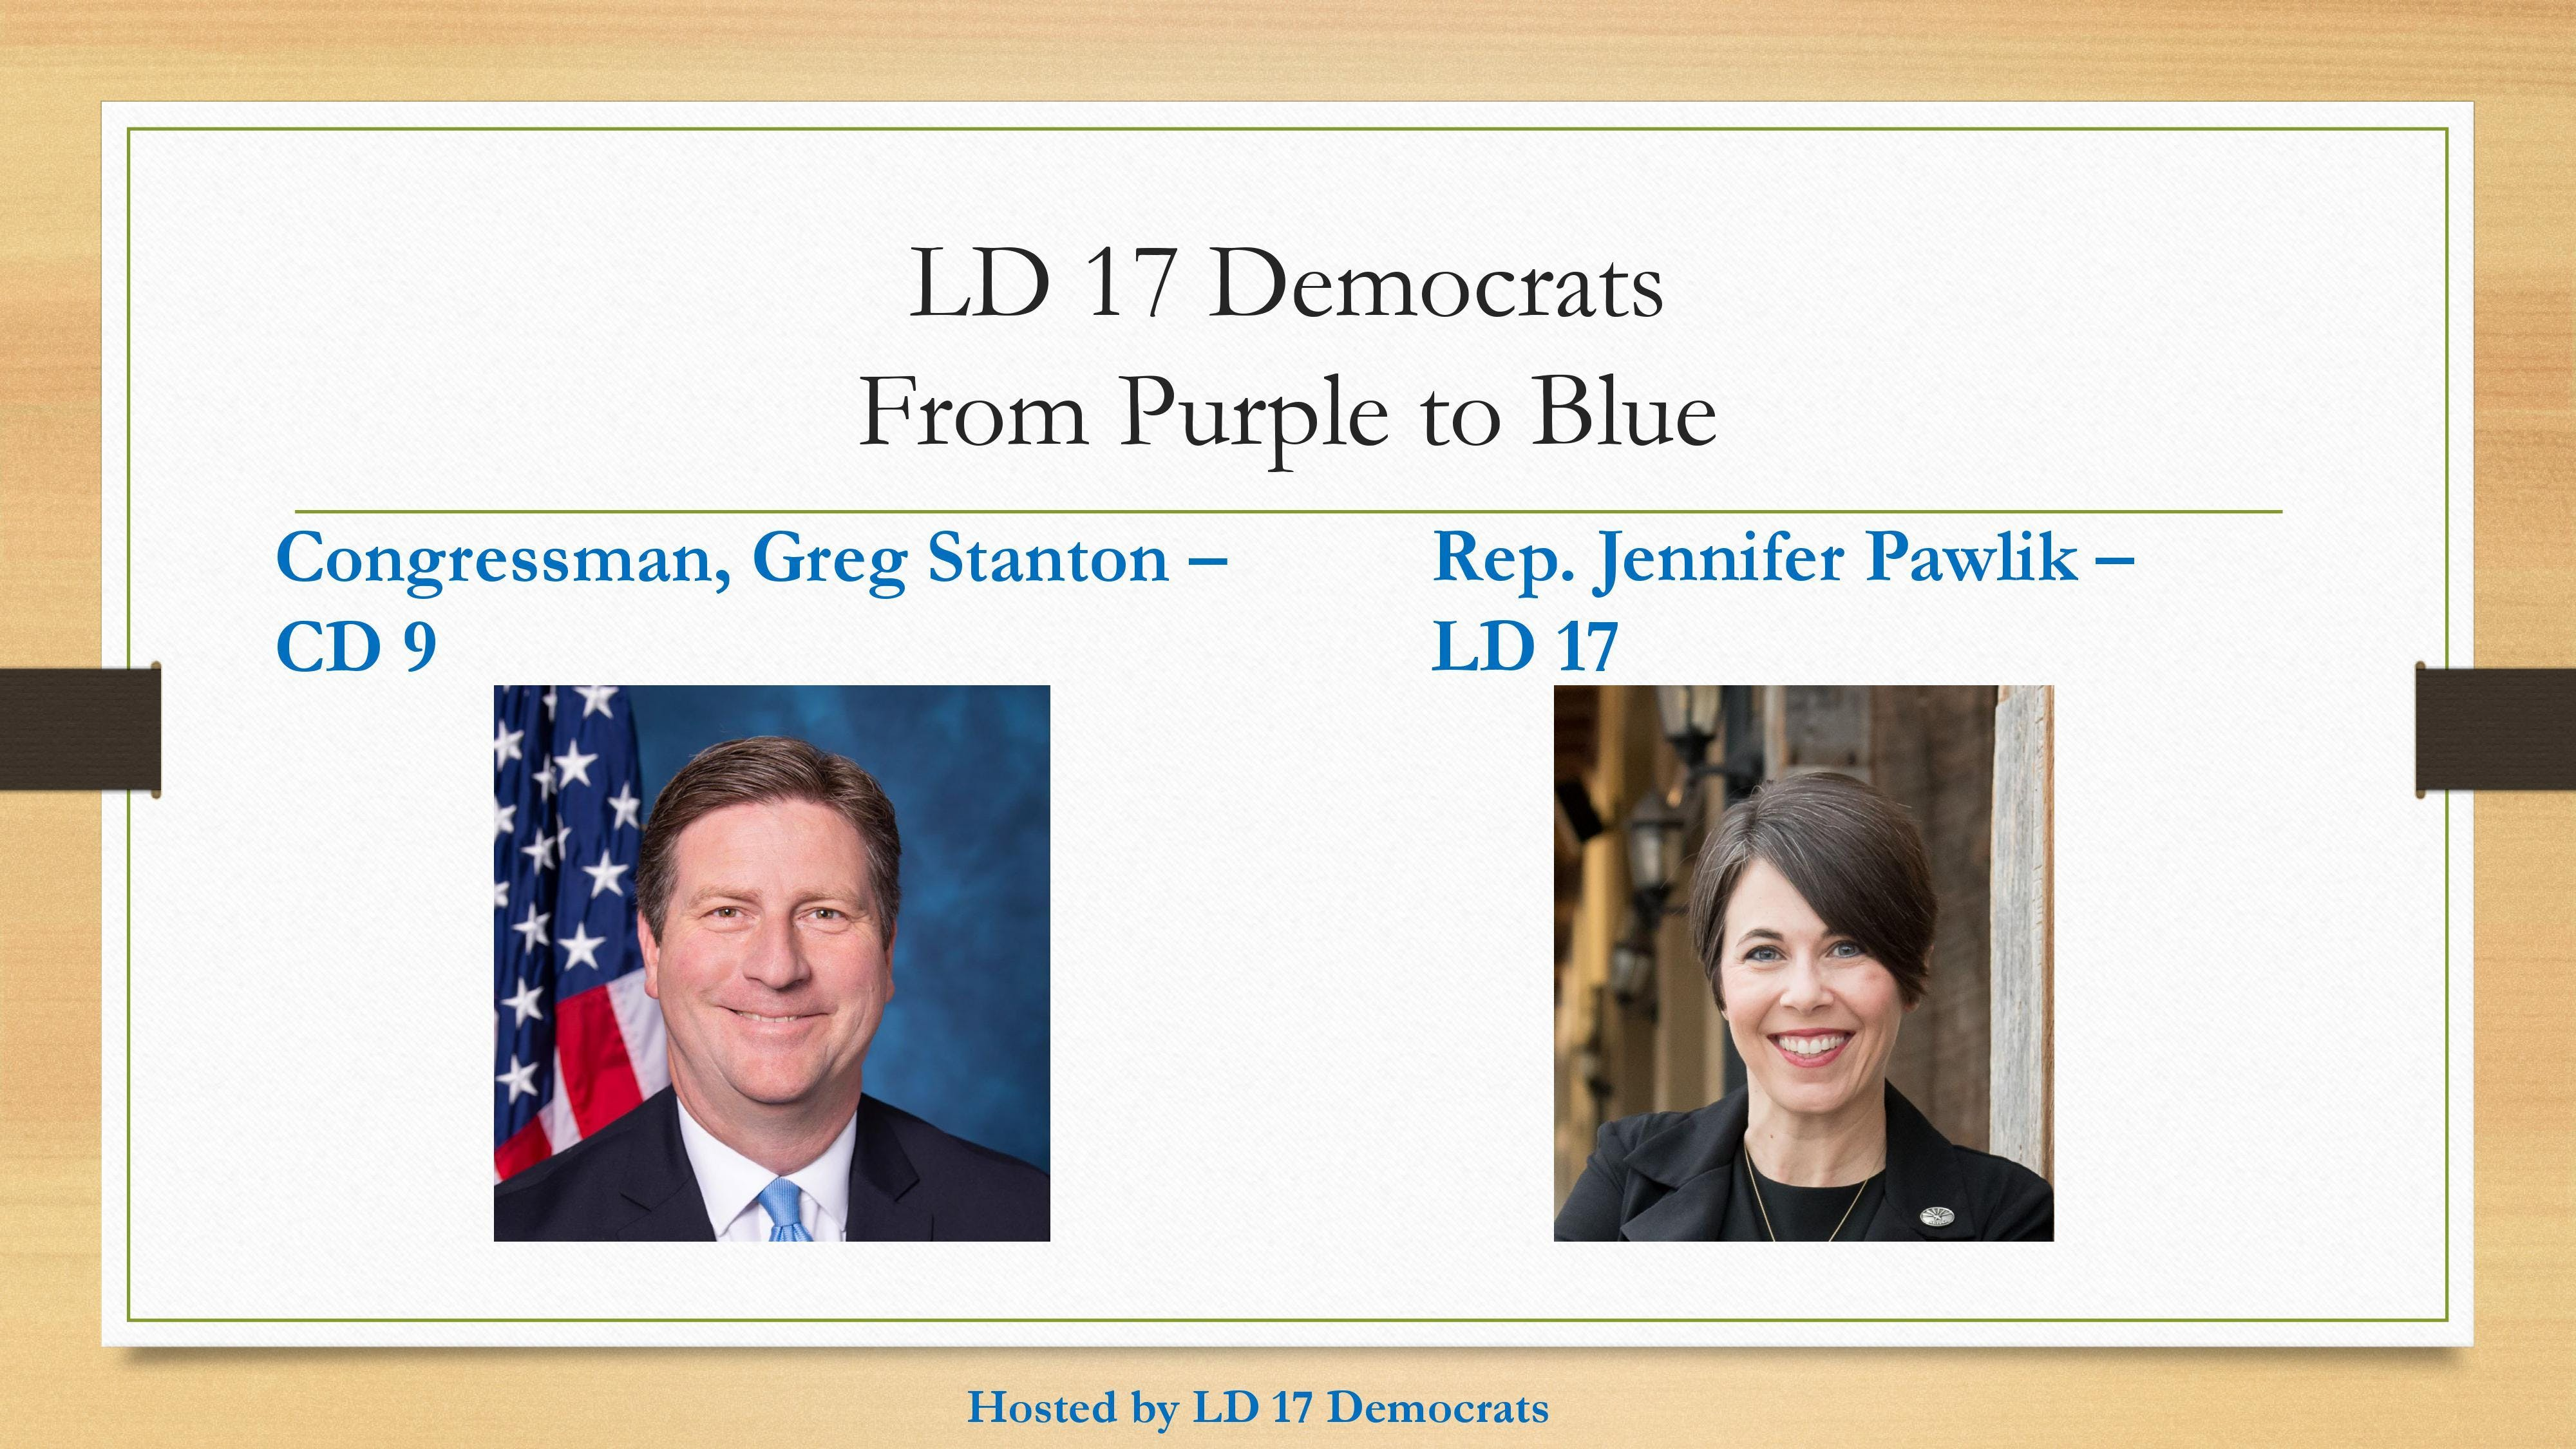 LD 17 Democrats - From Purple to Blue